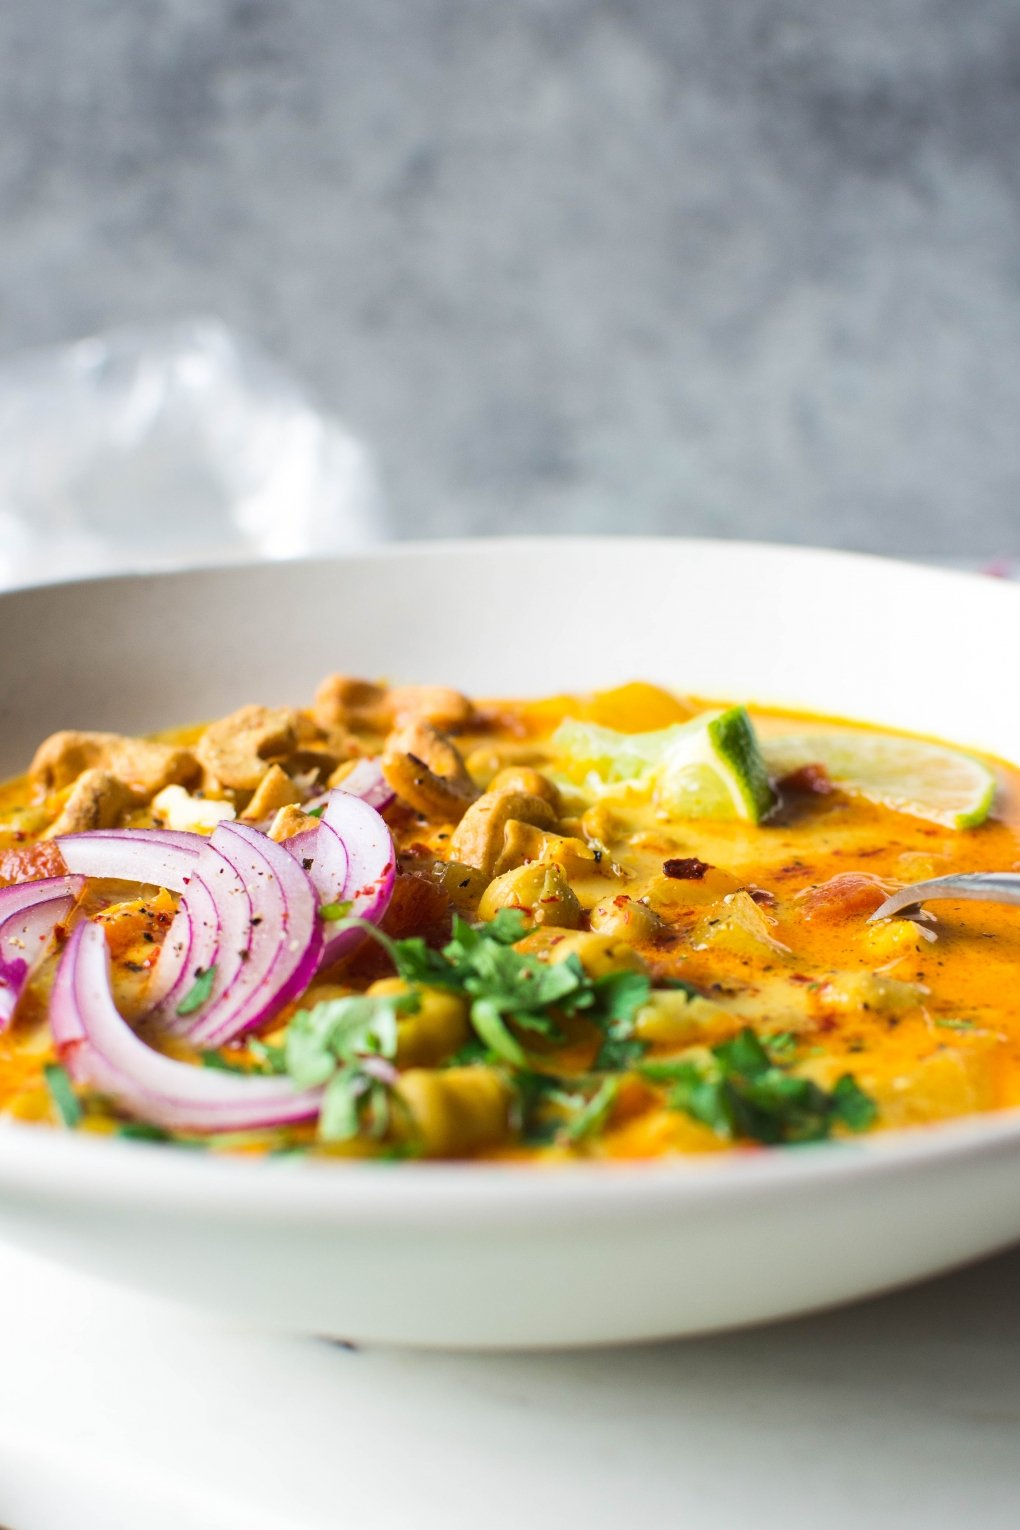 Close up and side angle shot of a large white bowl of bright orange chickpea and tomato coconut curry soup. Soup is topped with fresh red onion slices, chopped herbs, curry spiced cashews, and lime wedges. On a white background next to scattered herbs, lime wedges, and cashew bits.